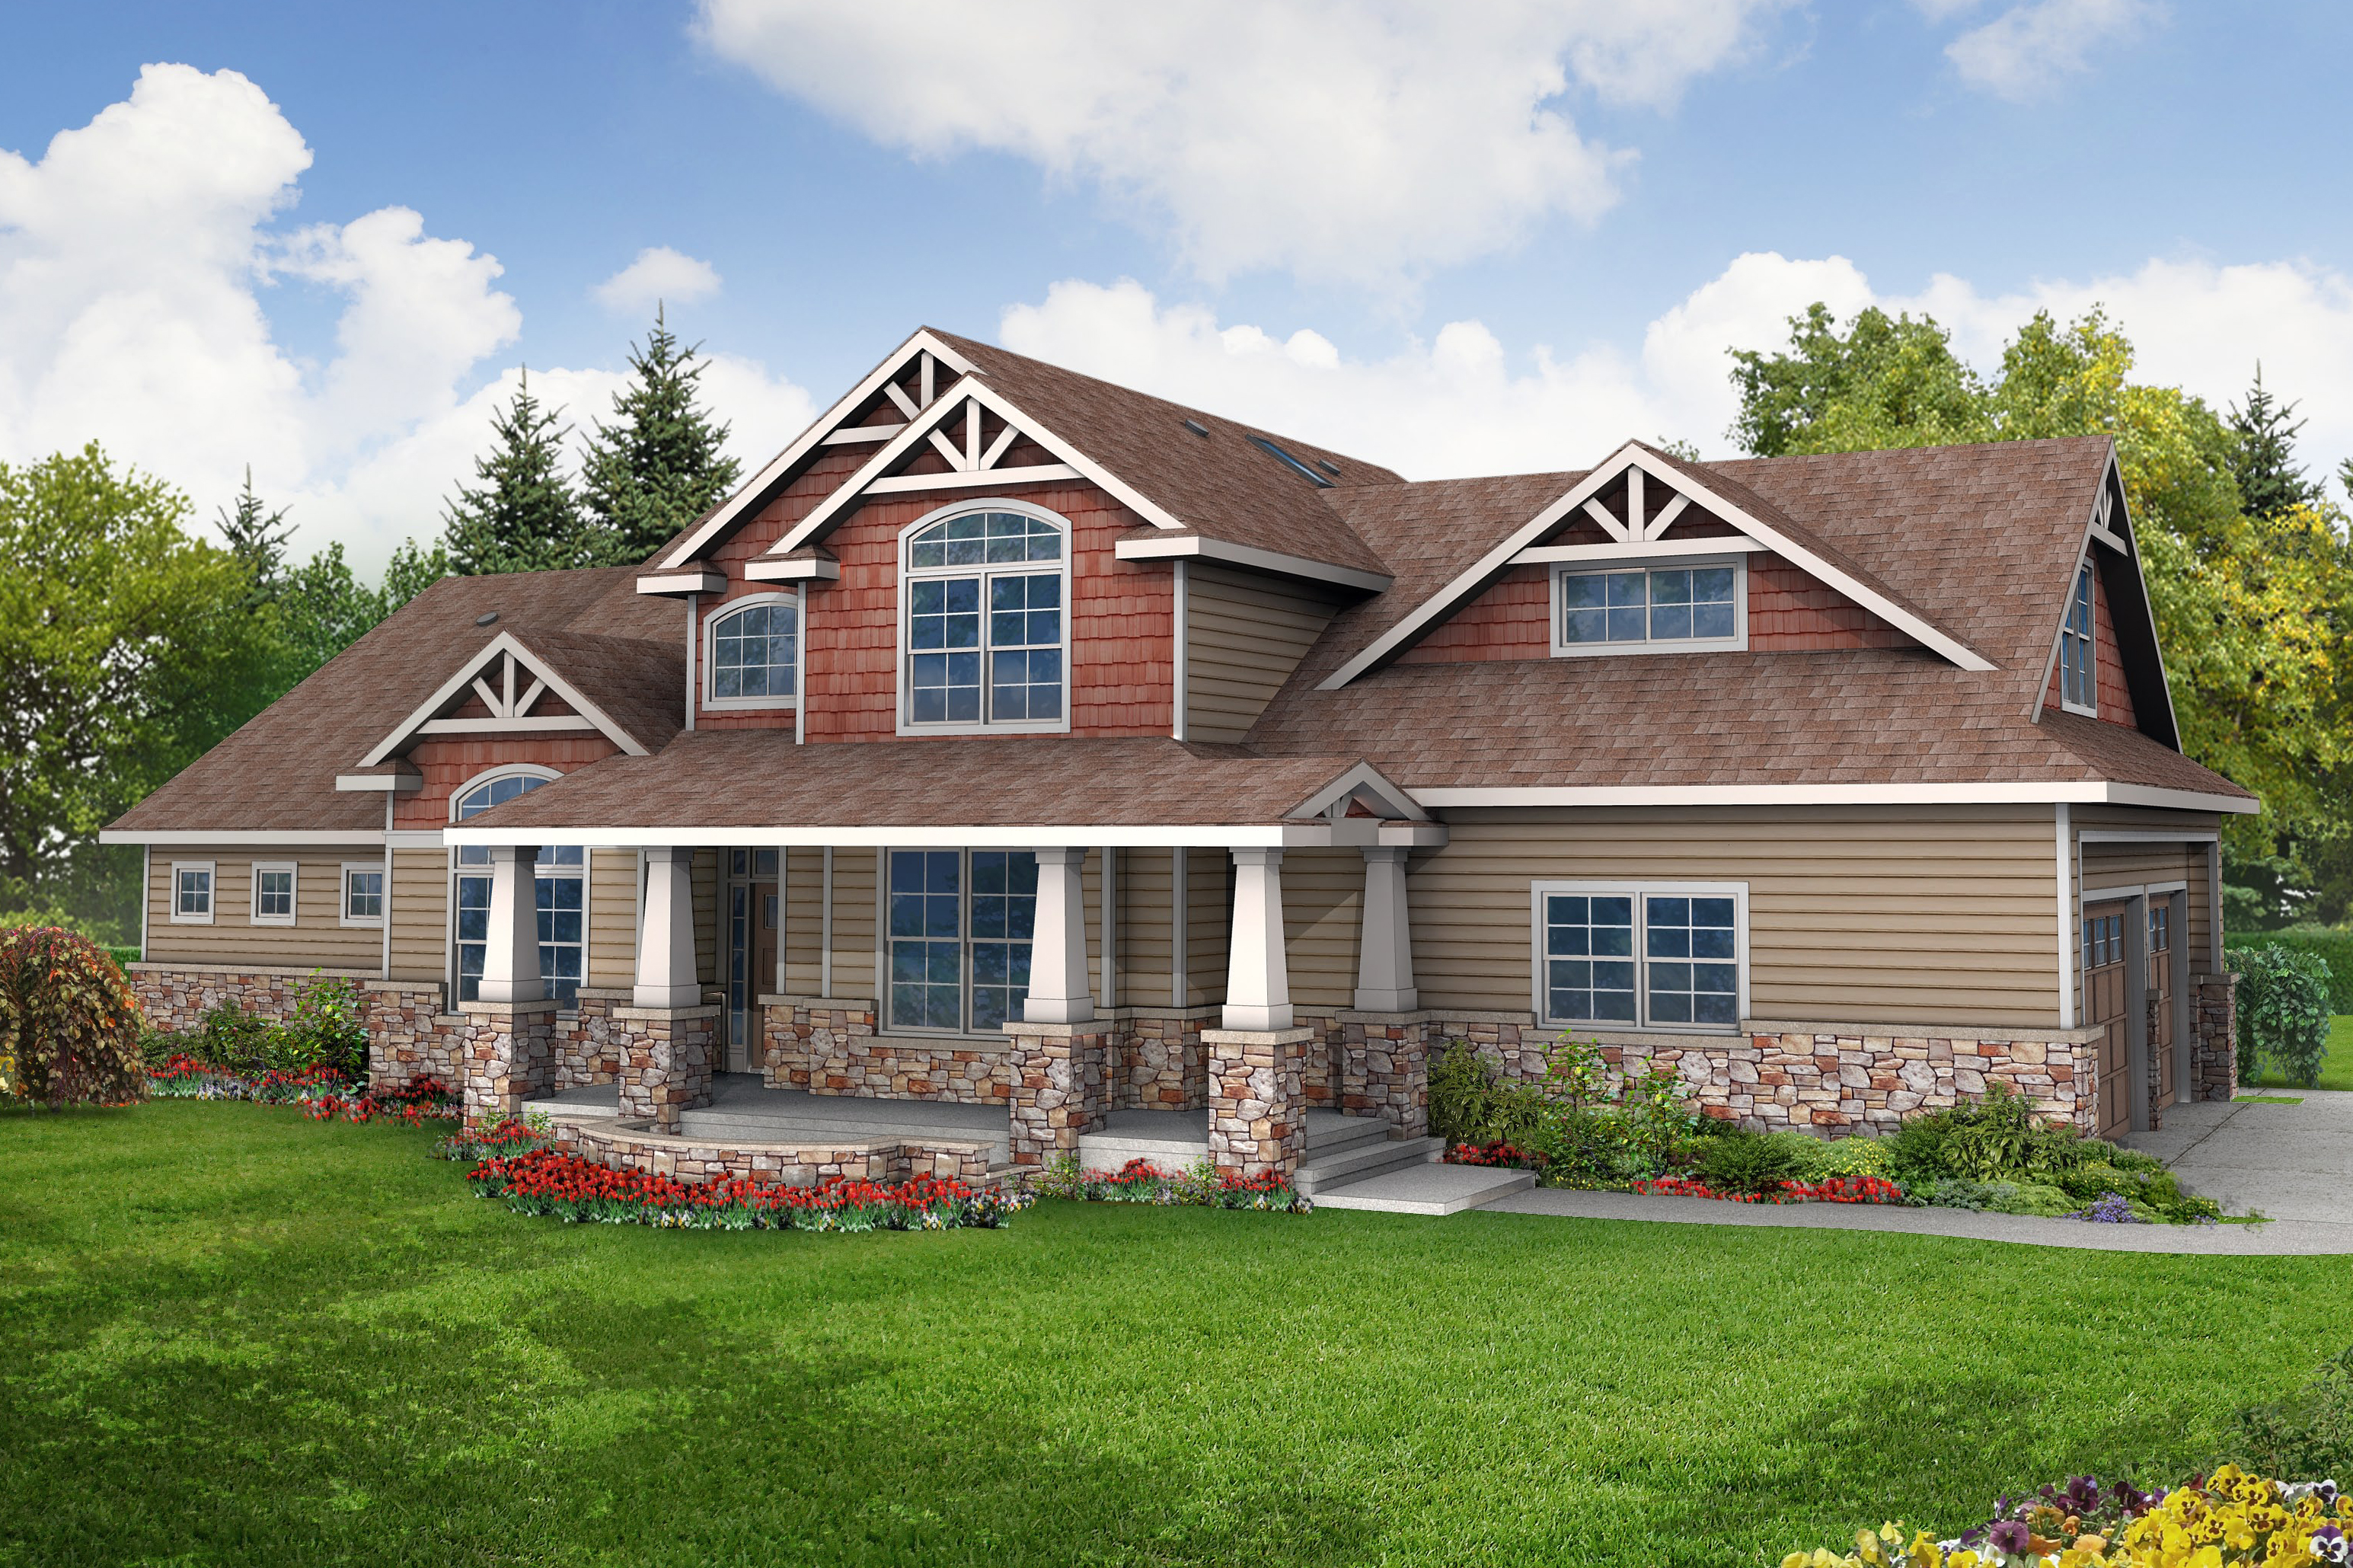 Craftsman house plans craftsman home plans craftsman for Craftsman home